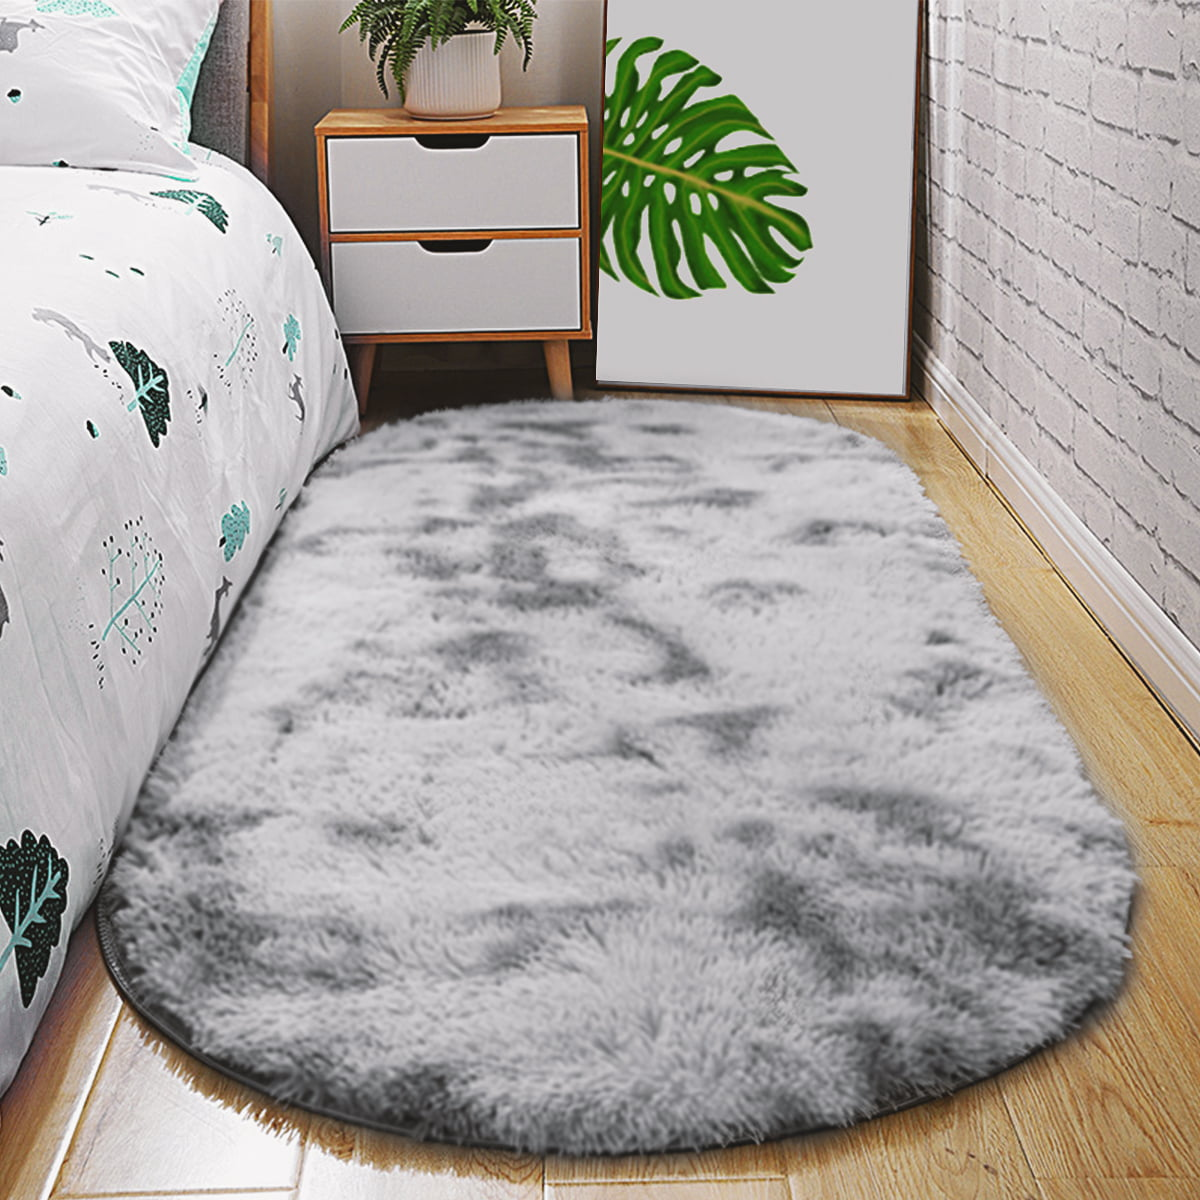 Image of: 31 5 X78 7 63 X90 5 Ultra Soft Fluffy Oval Area Rugs Shaggy Living Room Rug Solid Color Non Slip Bedroom Bedside Rug Runners Walmart Canada